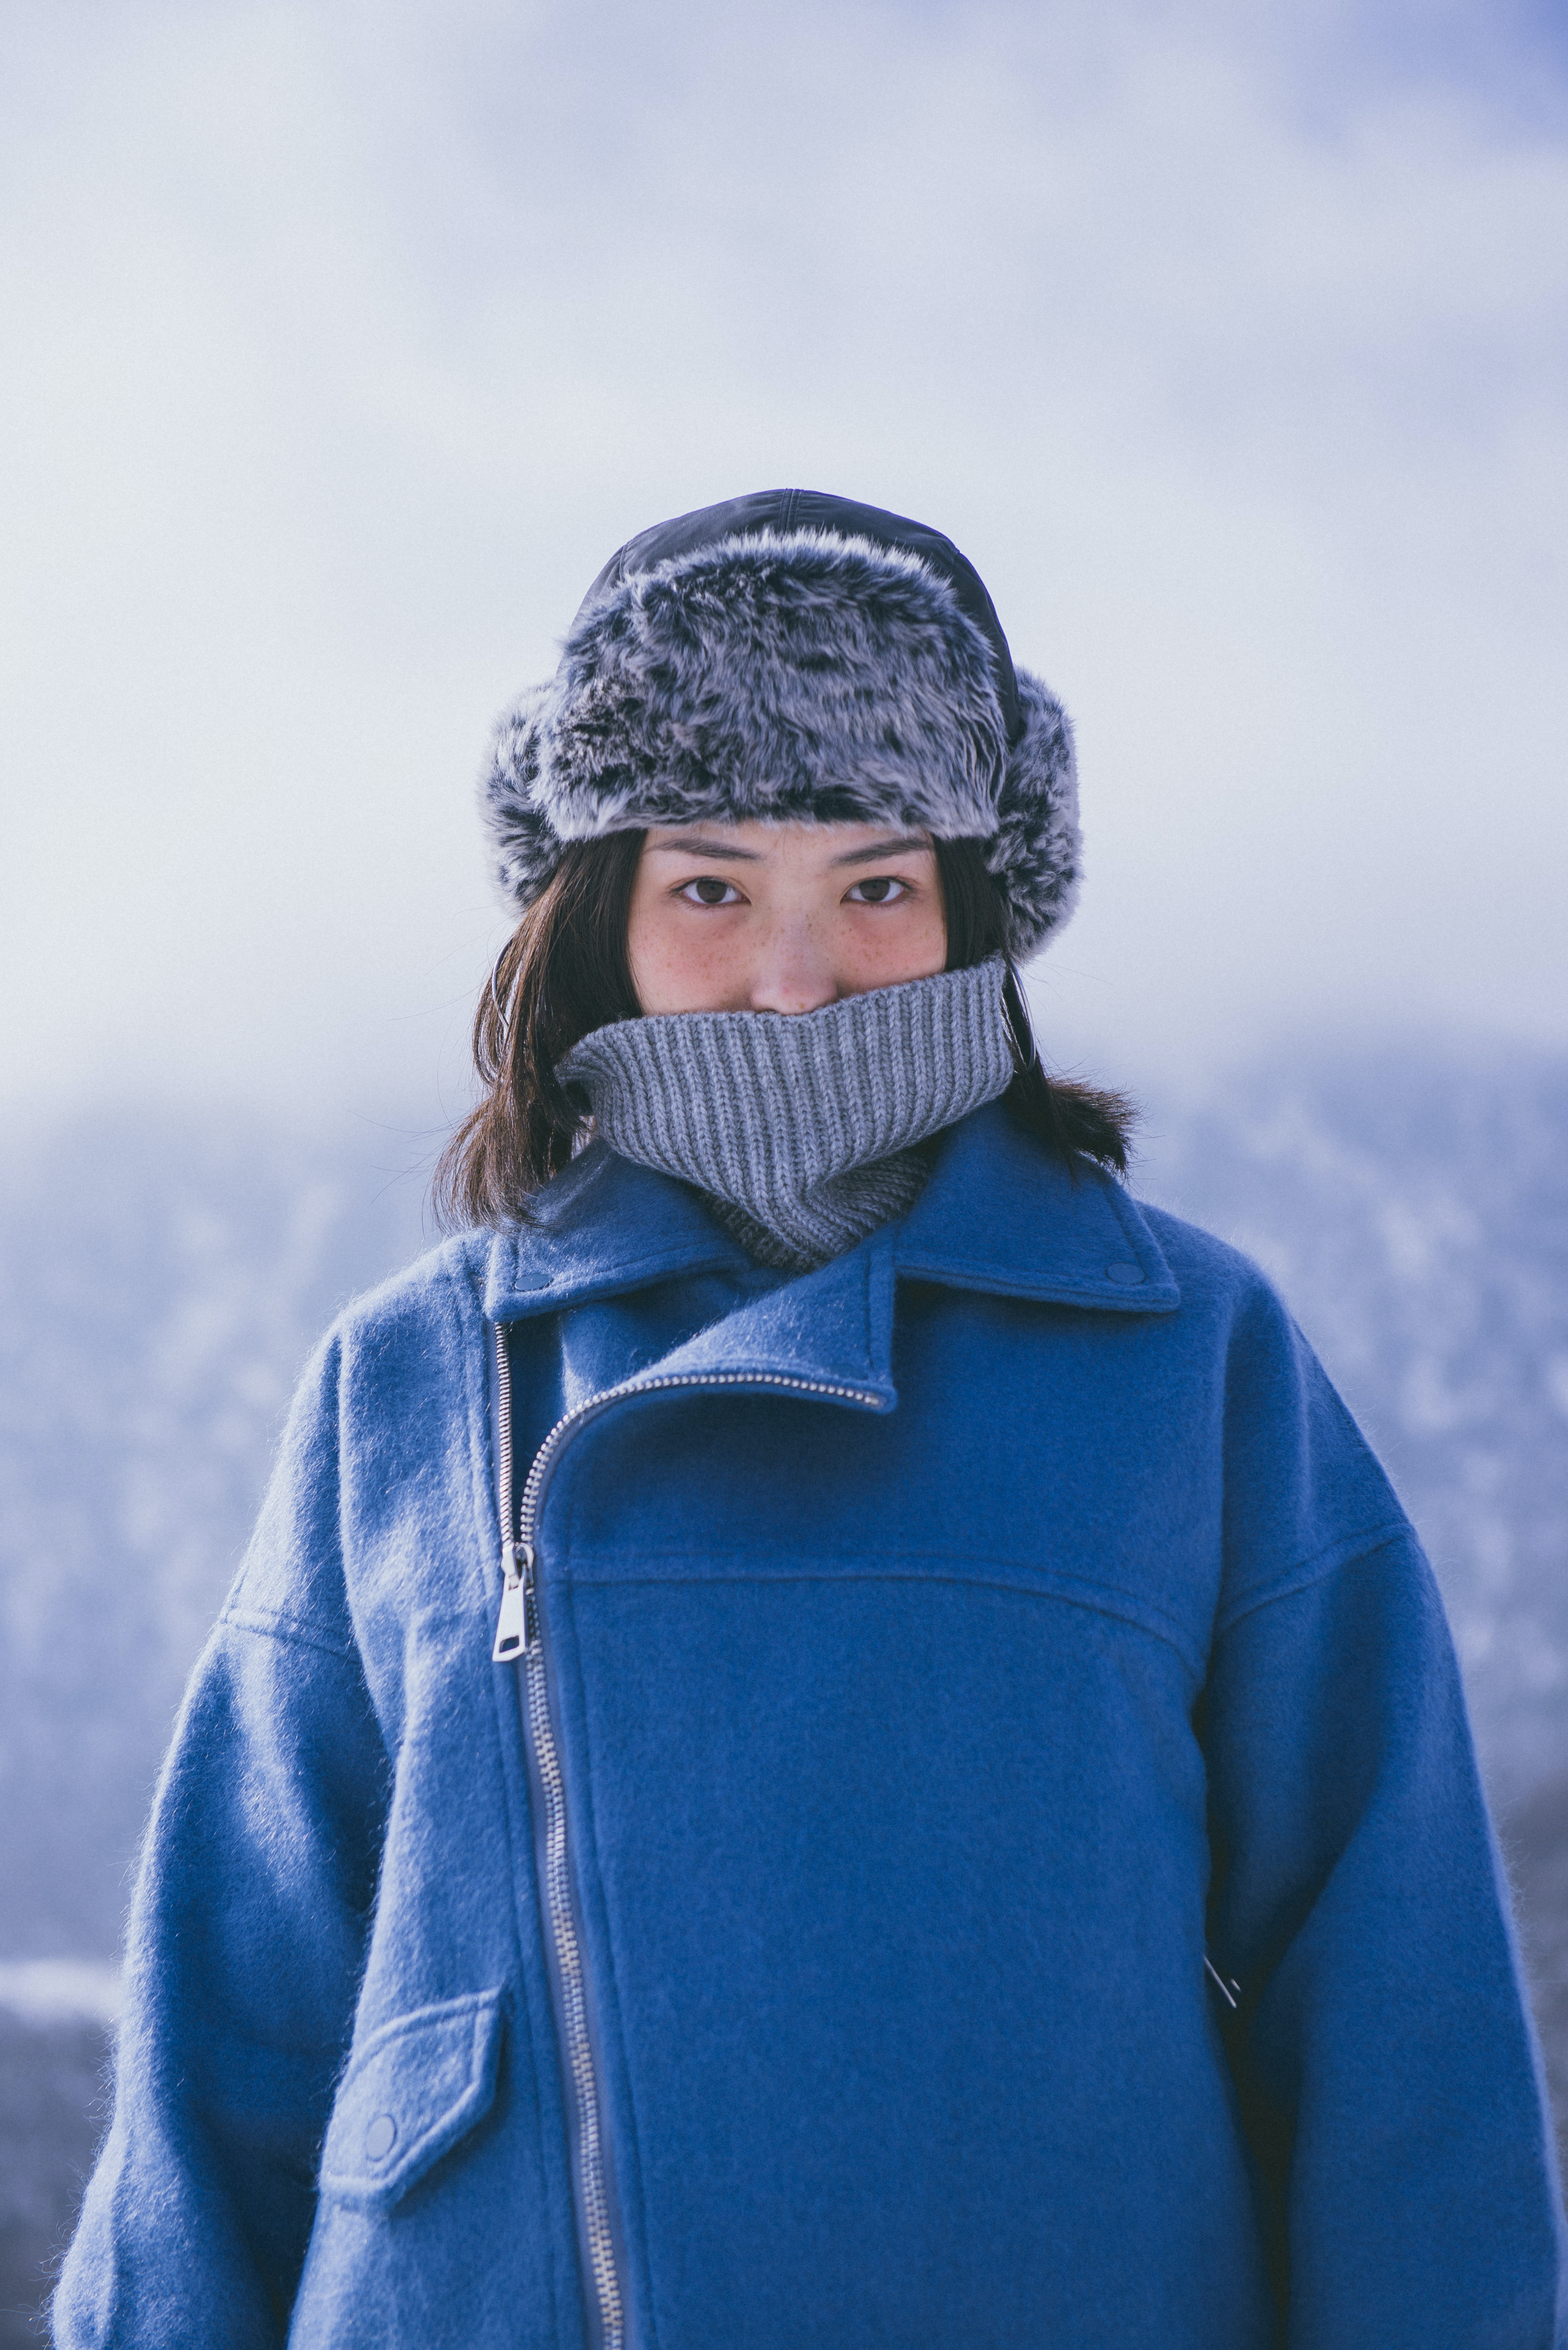 Woman bundled up in all blue winter coat and hat